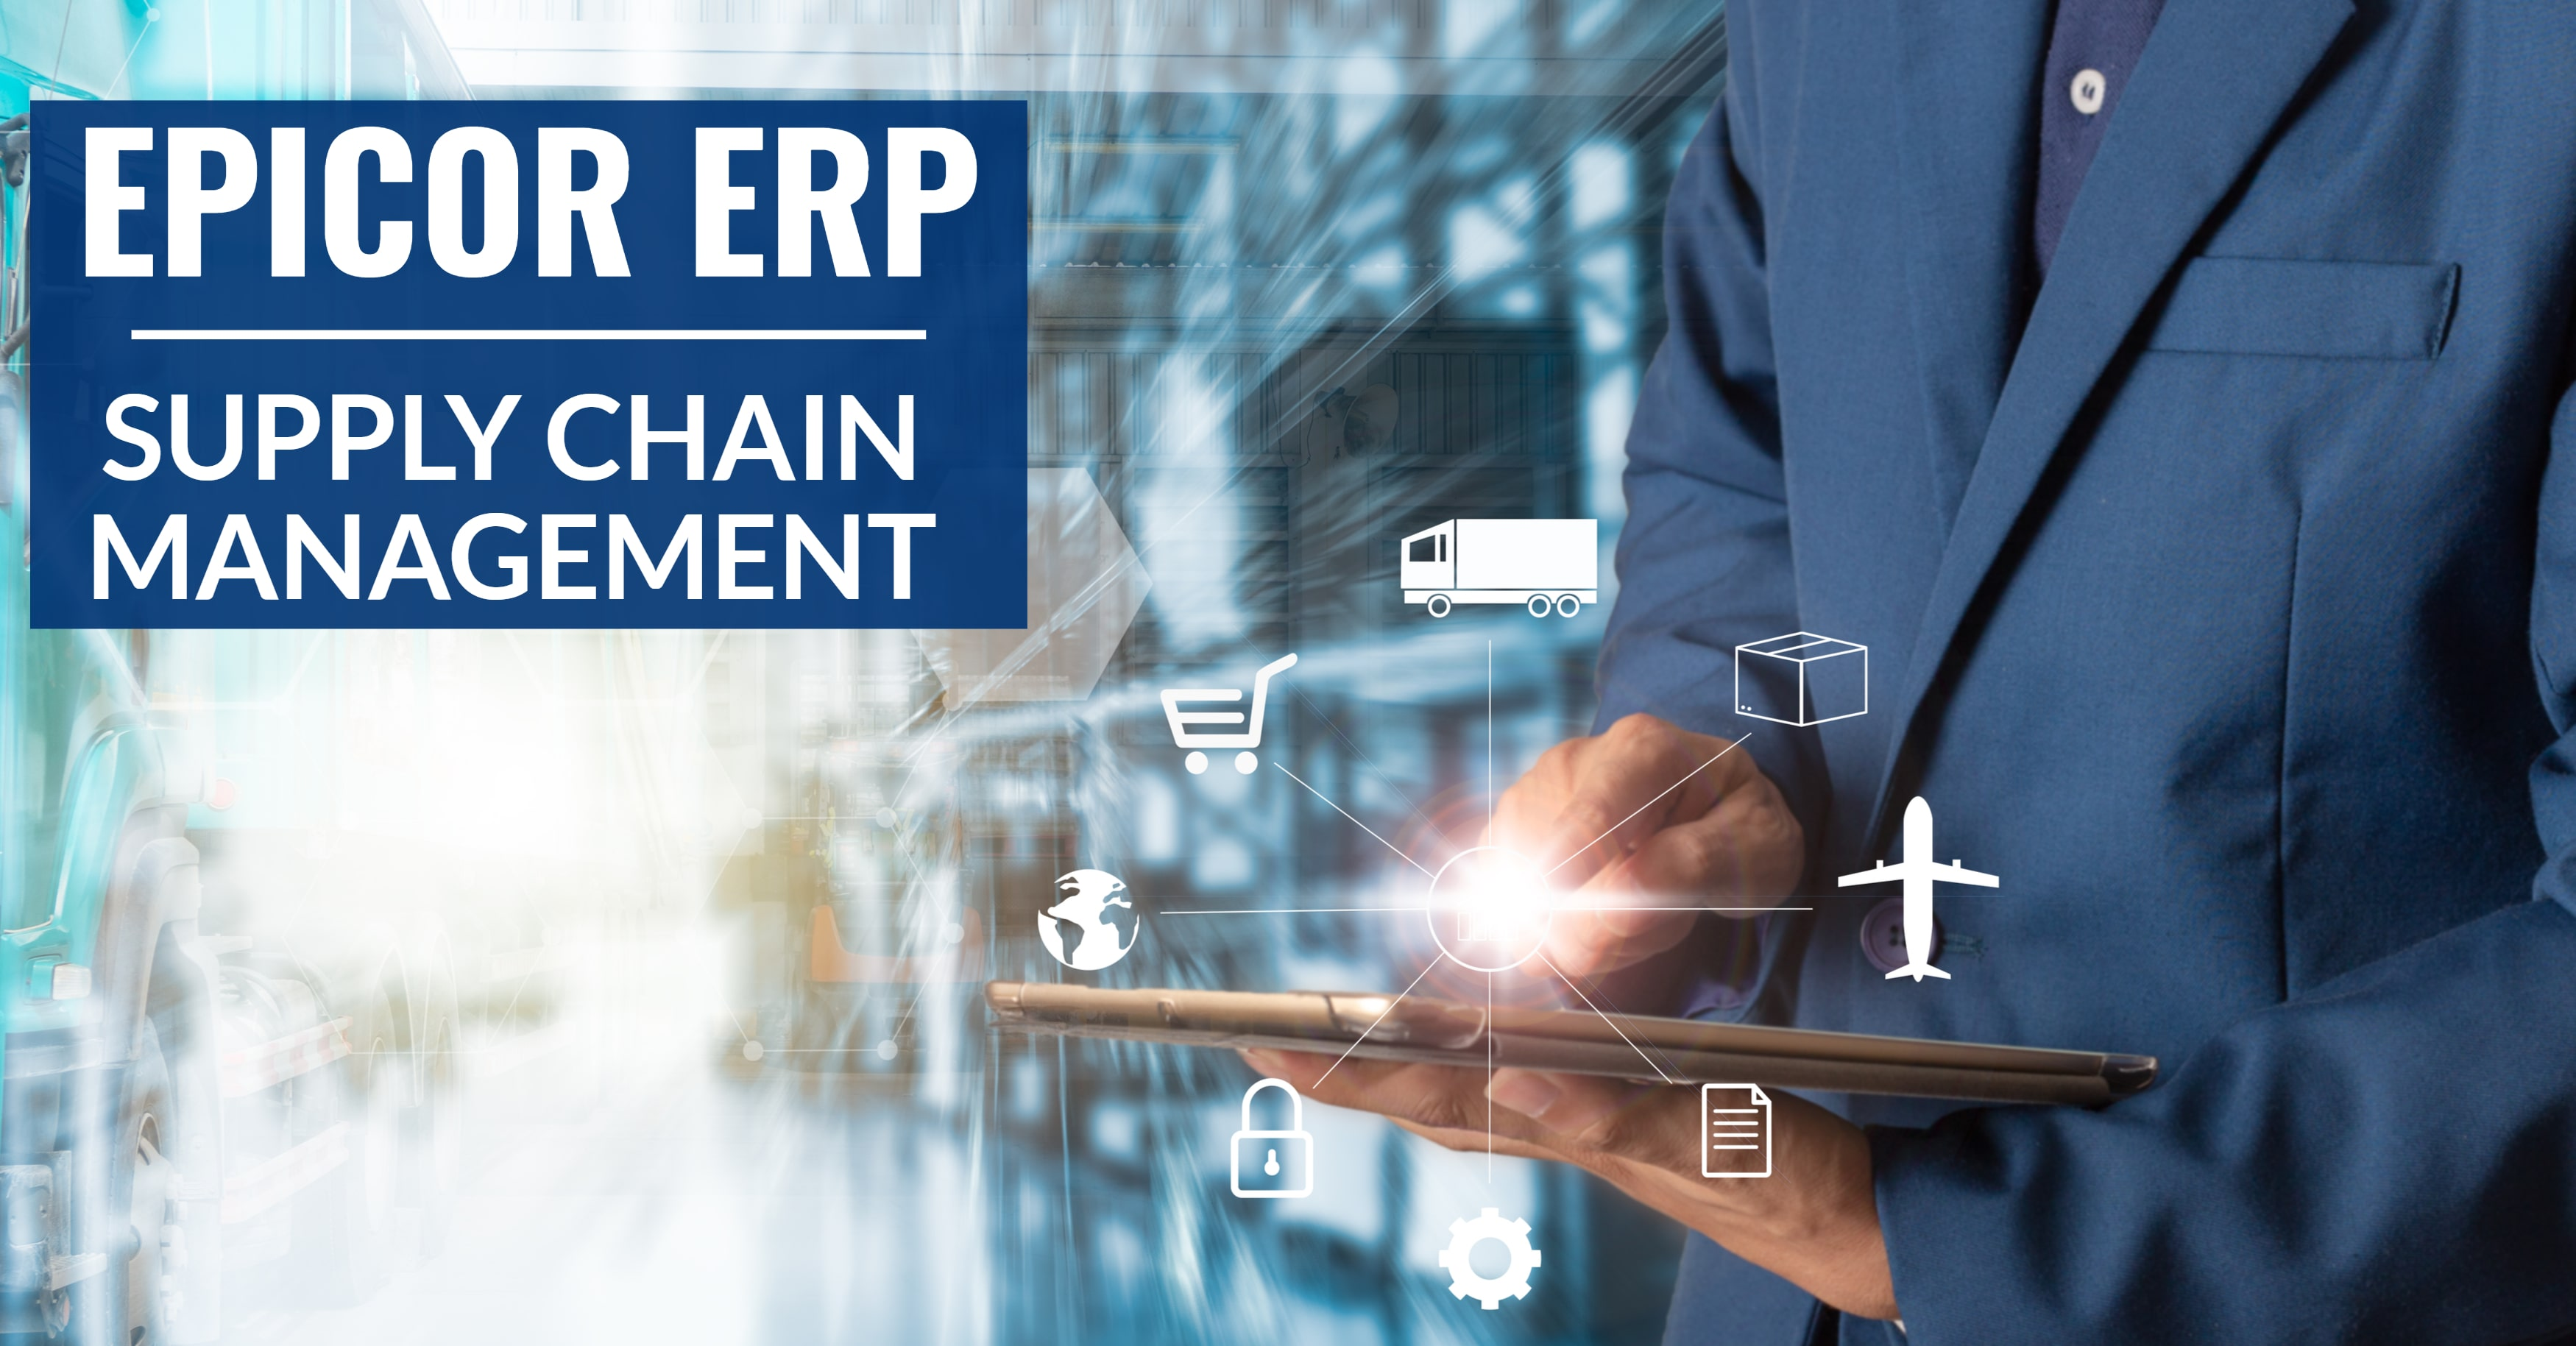 Control Your Supply Chain with Epicor ERP